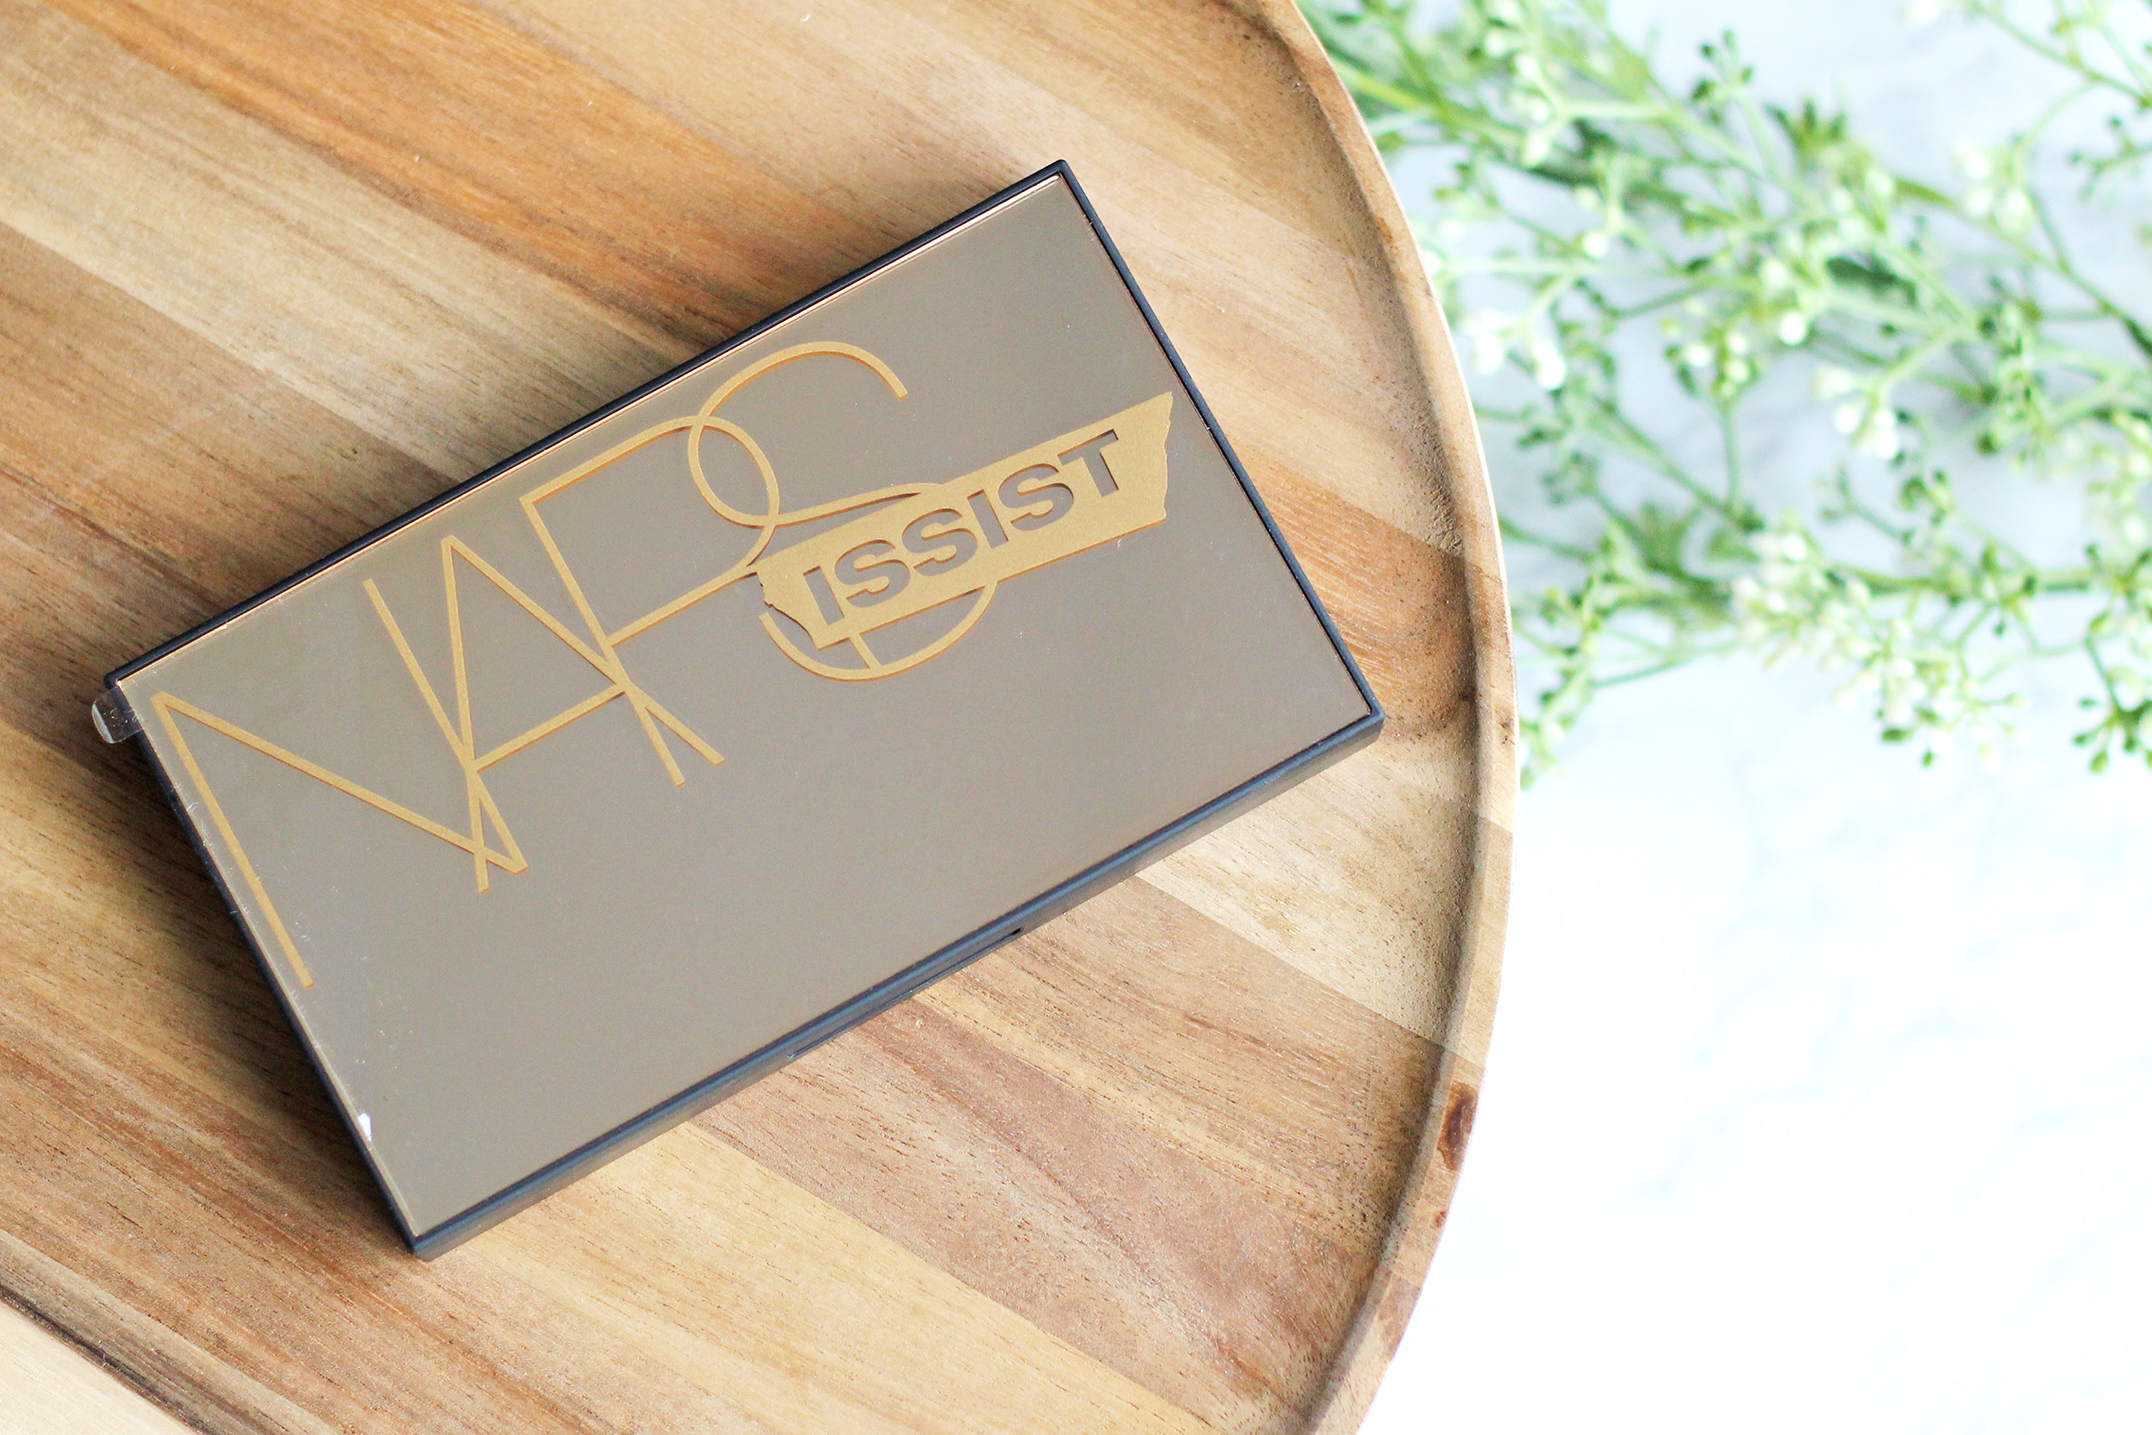 nars narsissist loaded oogschaduw palette review